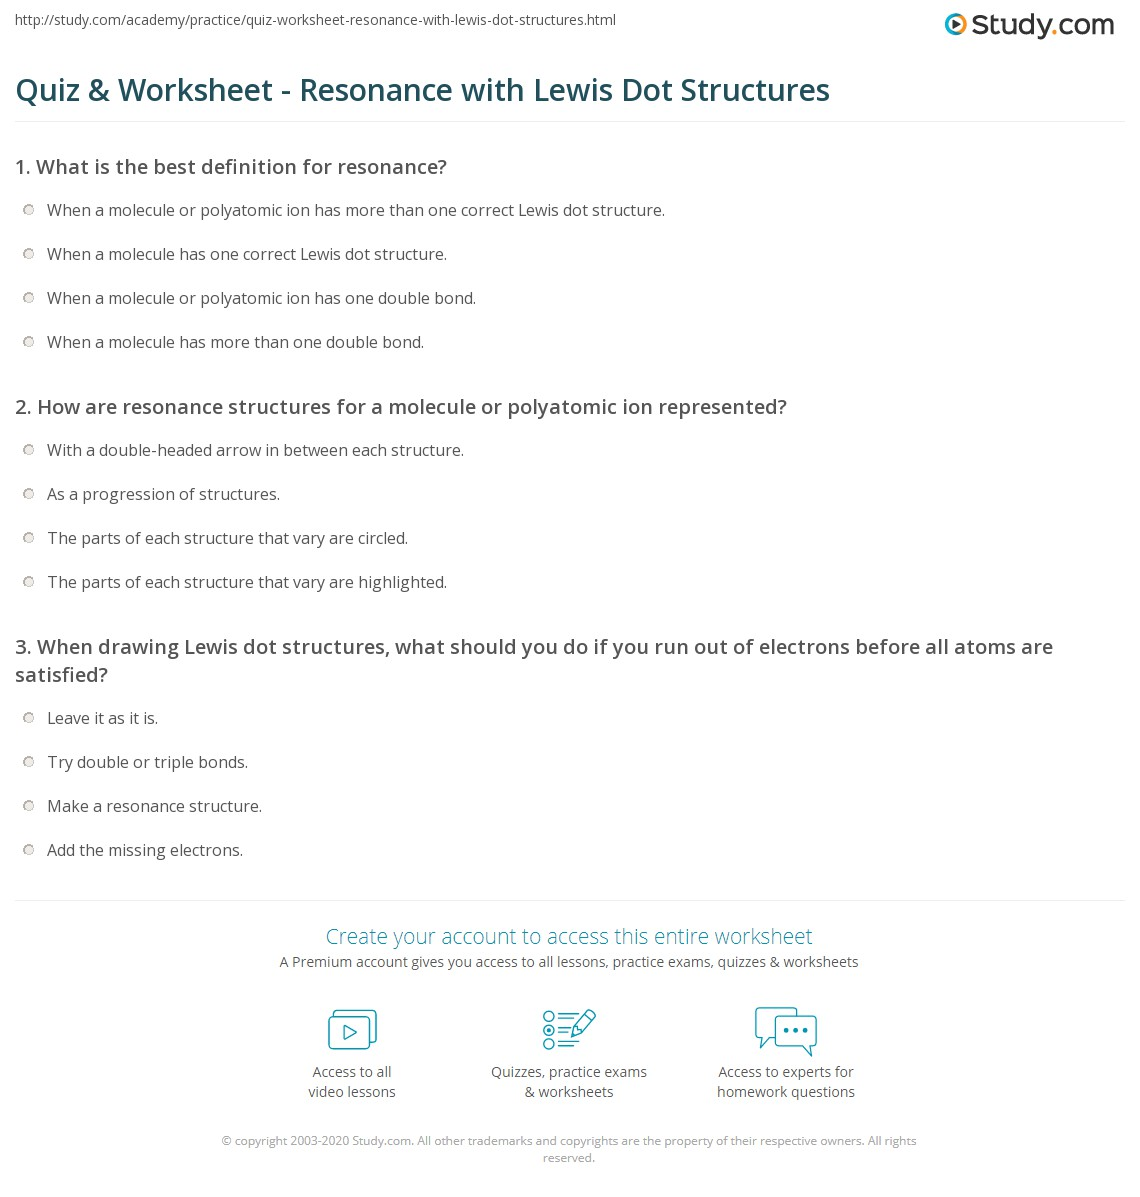 worksheet Drawing Lewis Structures Worksheet quiz worksheet resonance with lewis dot structures study com print worksheet